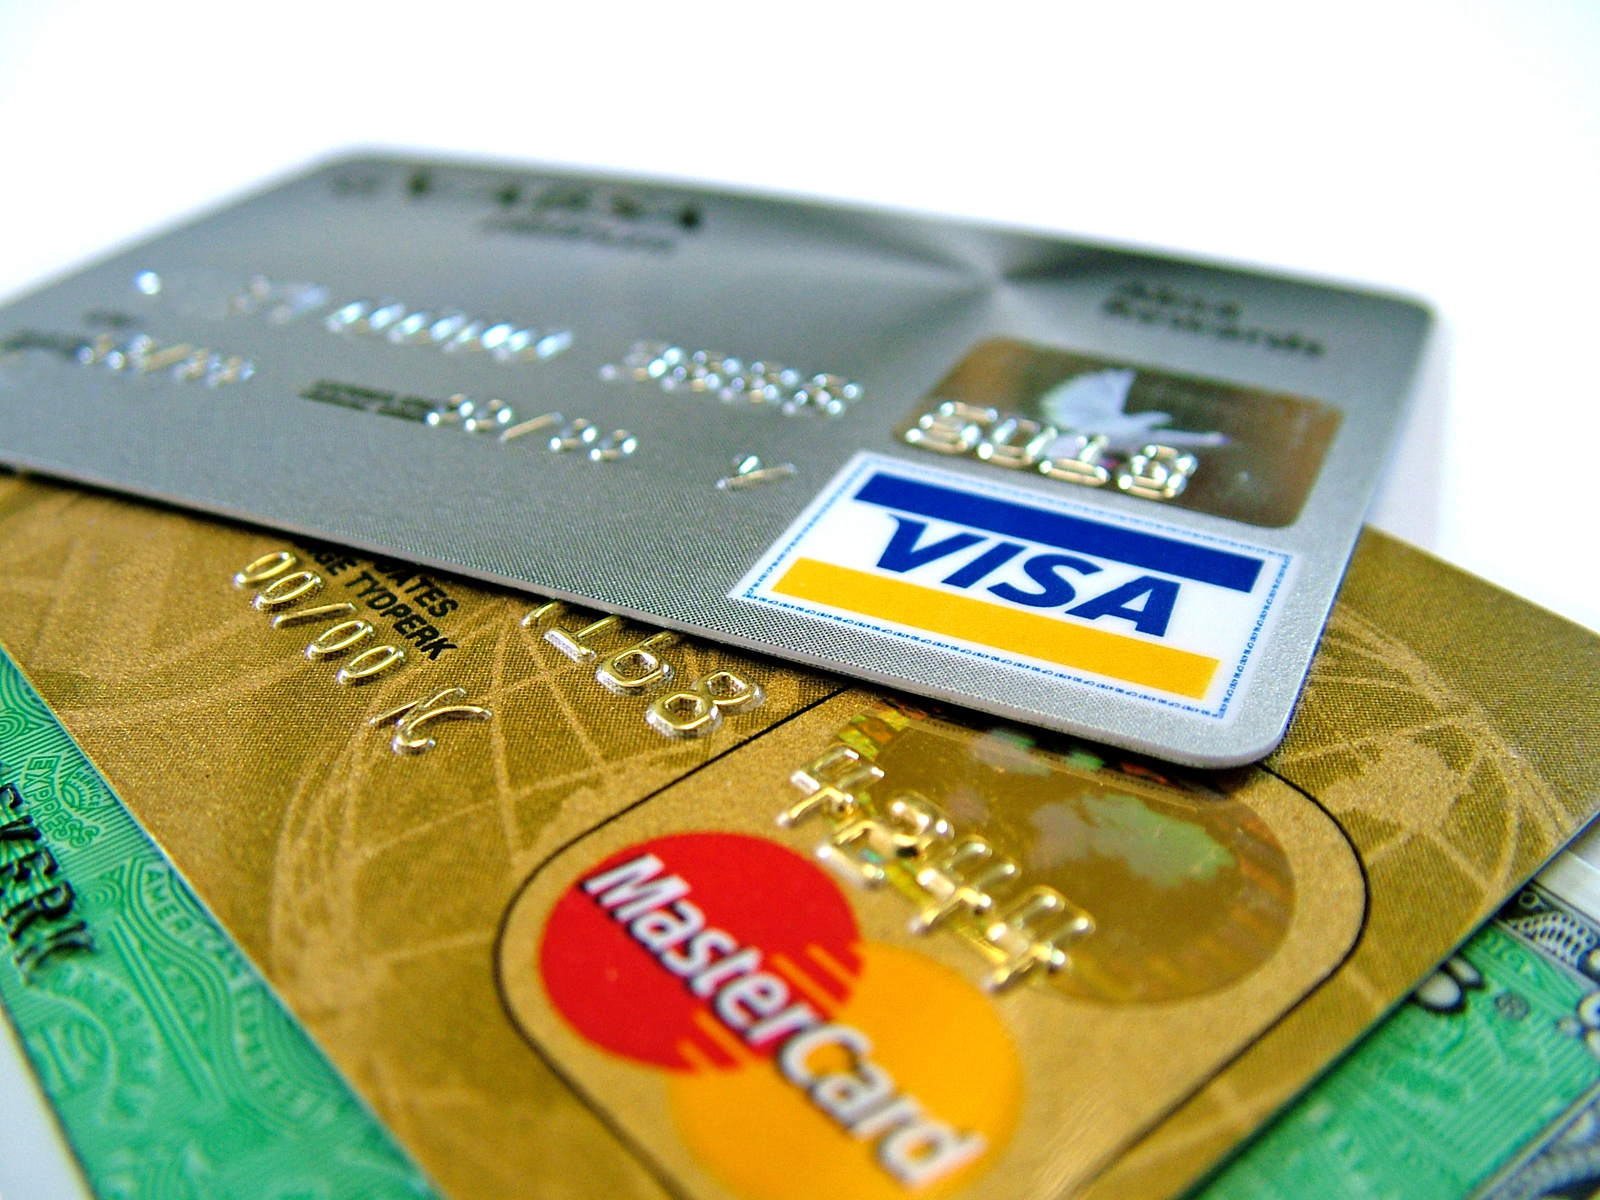 spending habits: Credit Card Companies Going for Premium Customers to Survive